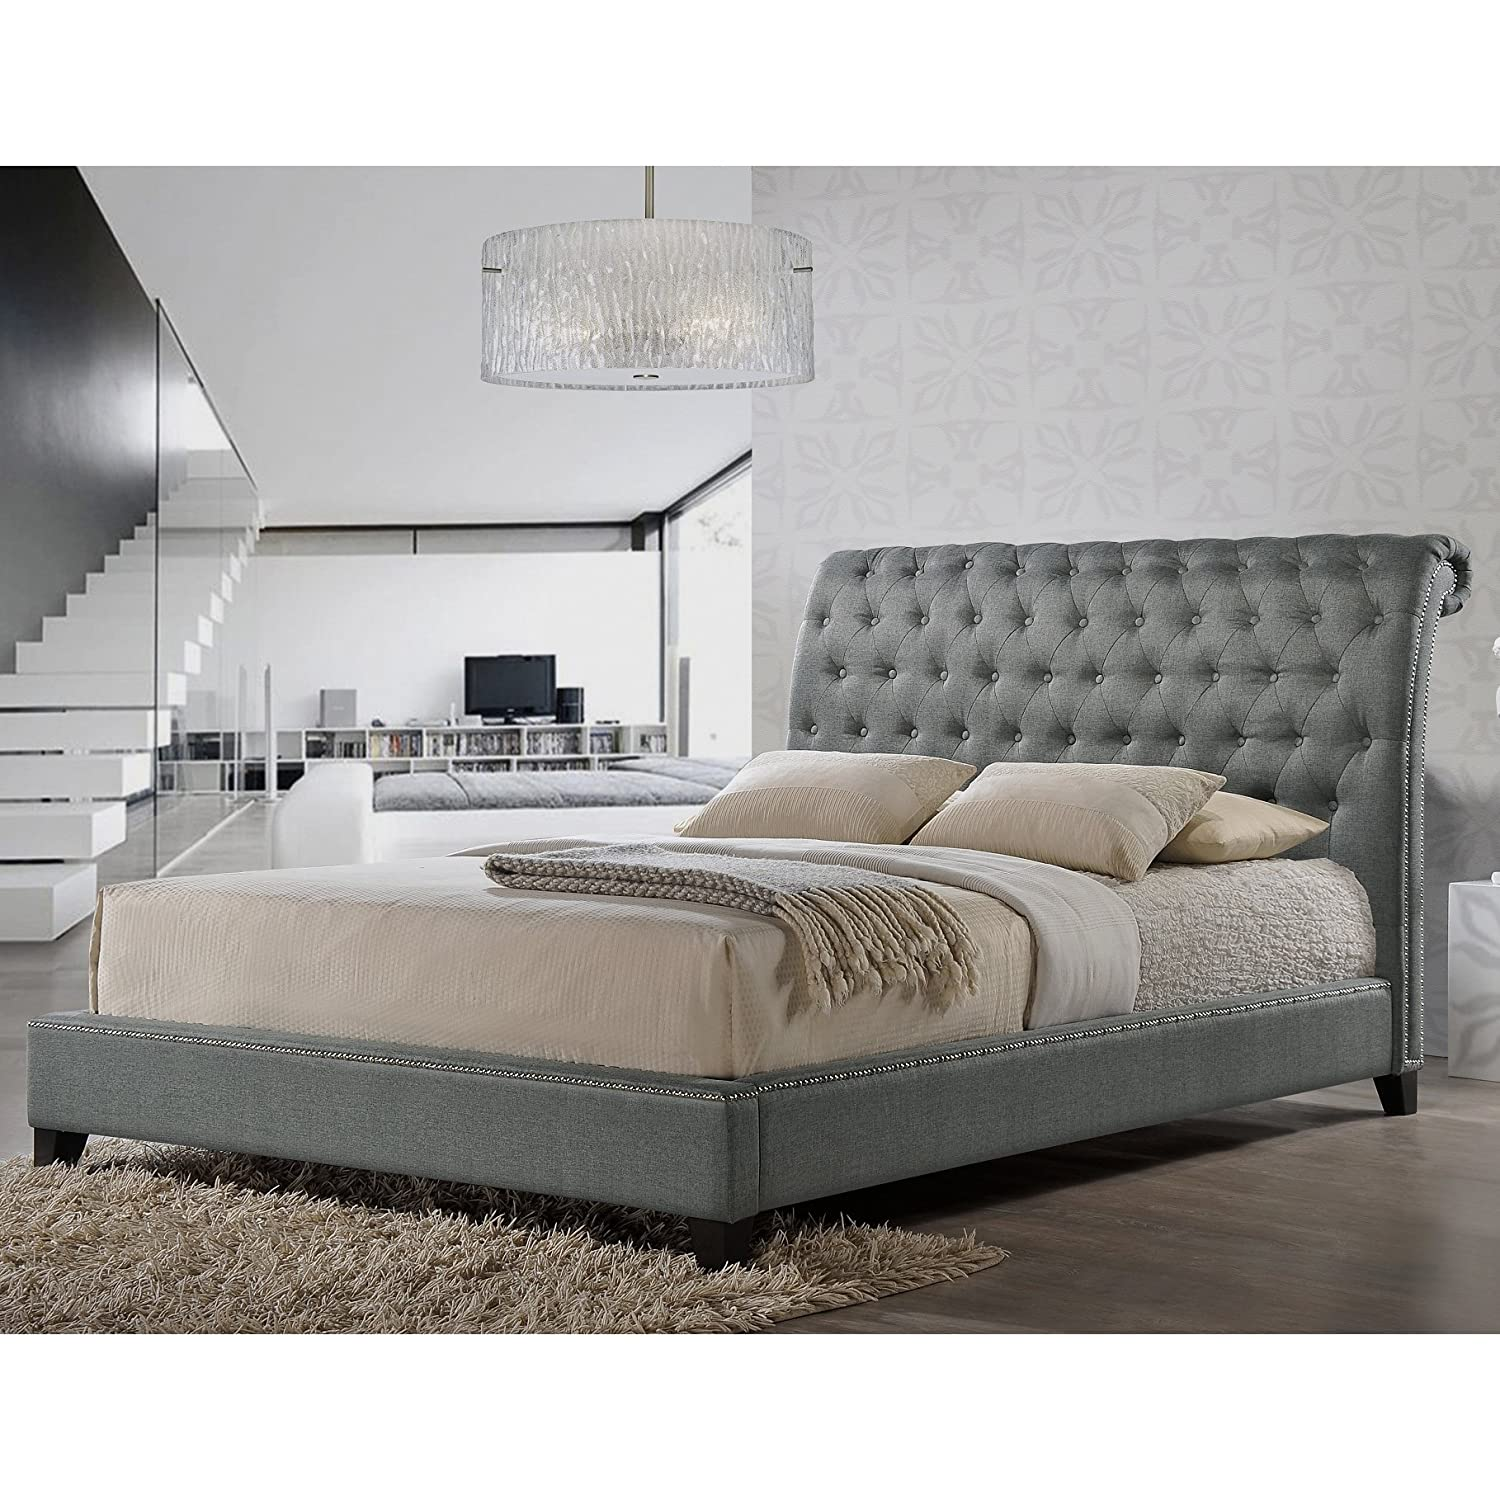 Amazon: Baxton Studio Jazmin Tufted Modern Bed With Upholstered  Headboard, Queen, Black: Kitchen & Dining